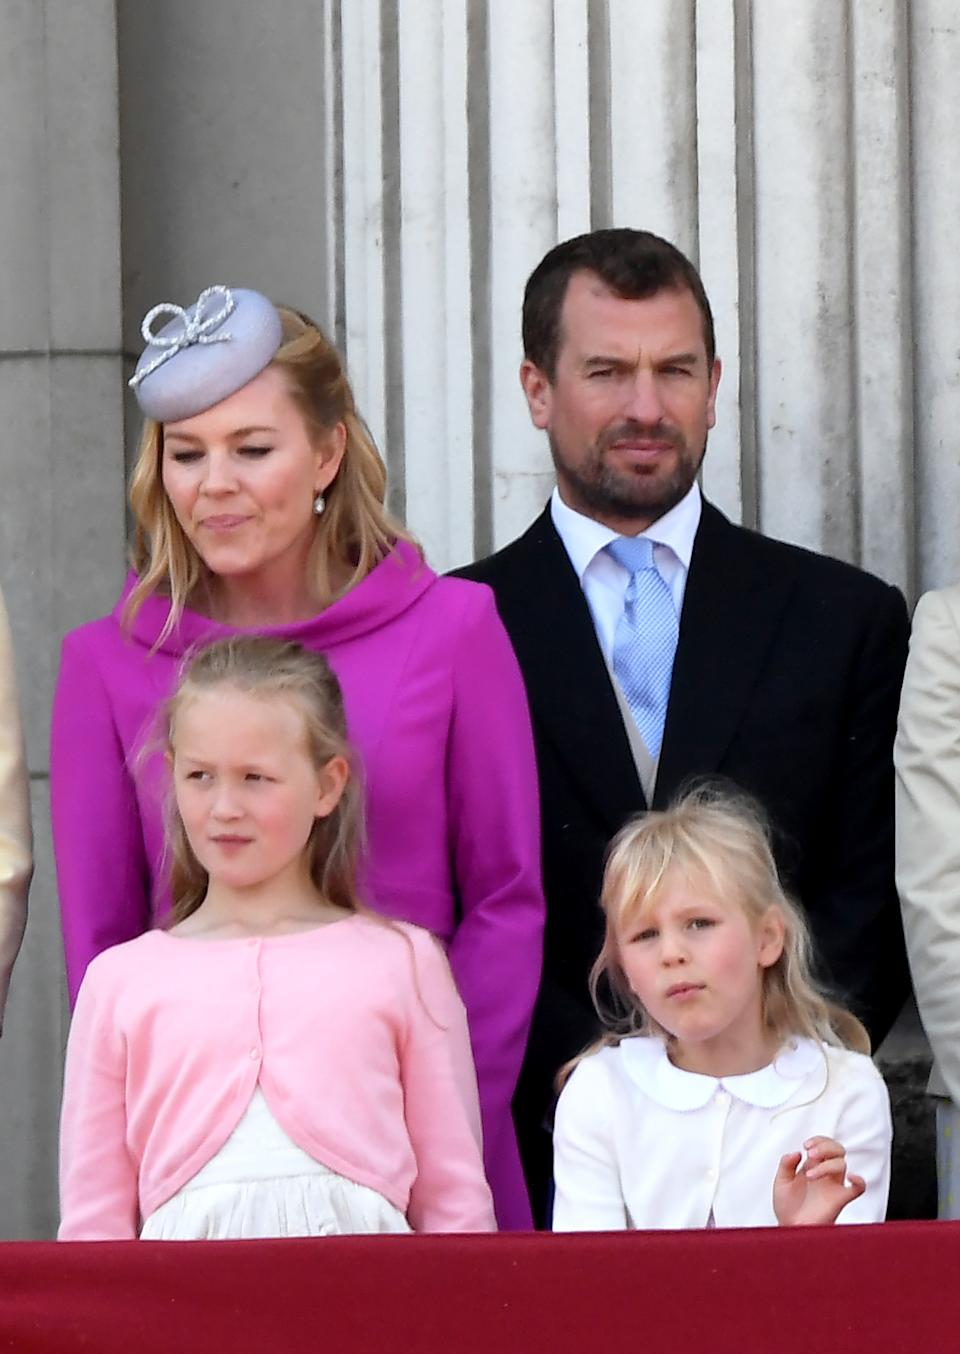 LONDON,  UNITED KINGDOM - JUNE 08:  Autumn Phillips, Peter Phillips and their children Savannah Phillips and Isla Phillips stand on the balcony of Buckingham Palace following Trooping the Colour on June 08, 2019 in London, England. (Photo by Anwar Hussein/WireImage)